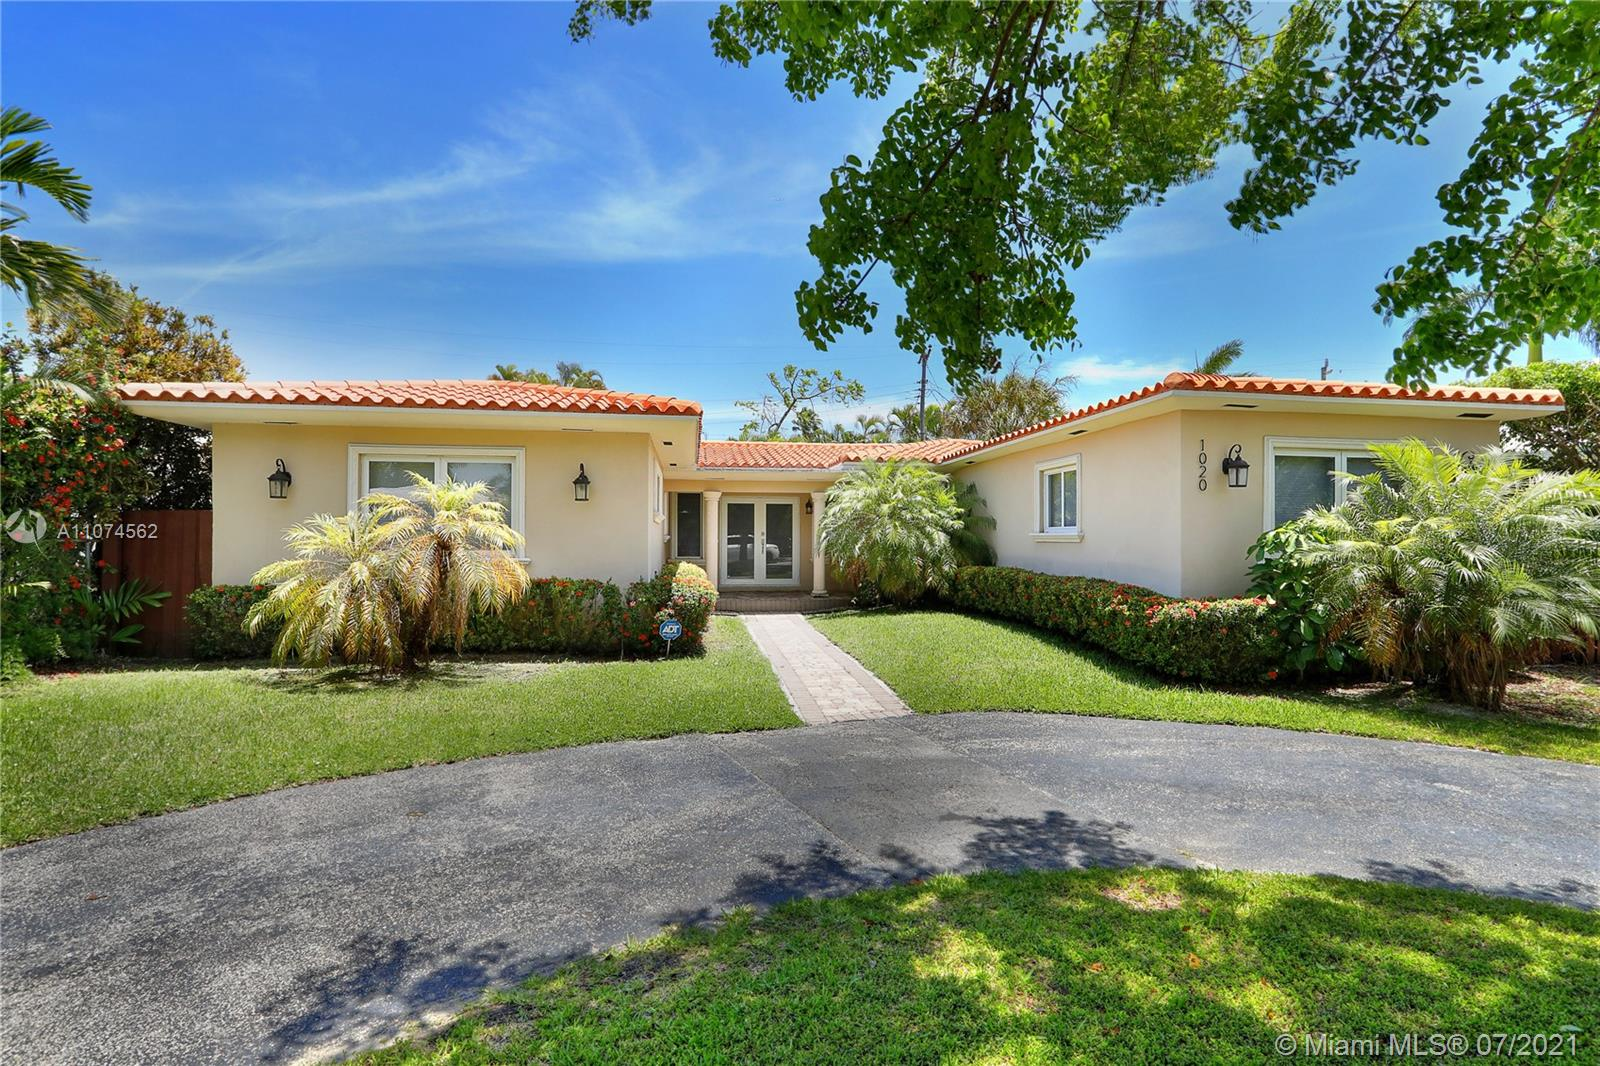 Located in gated Normandy Shores Island & near the Beach & Normandy Shore's Golf Club, this home has been  totally remodeled in the last 6 years! W/ over 2,400 sq. ft under air, this 3 BEDS/ 3 BATHS + DEN features a grand family room, marble floors throughout, private master suite that opens up to the tropical yard, Impact W + Ds, 6-year-old roof, updated plumbing + electrical & newer AC. W/ a state-of-the art kitchen and a private yard w/ room for a pool, this home is perfect for entertaining and to host a nice family gathering! W/ walking distance to all the fantastic amenities the Island has to offer incl. the golf course, tennis & basketball courts, soccer field, kid's playground, gym & clubhouse w/ bar & restaurant. Property is also available for rent at $8,000/month.